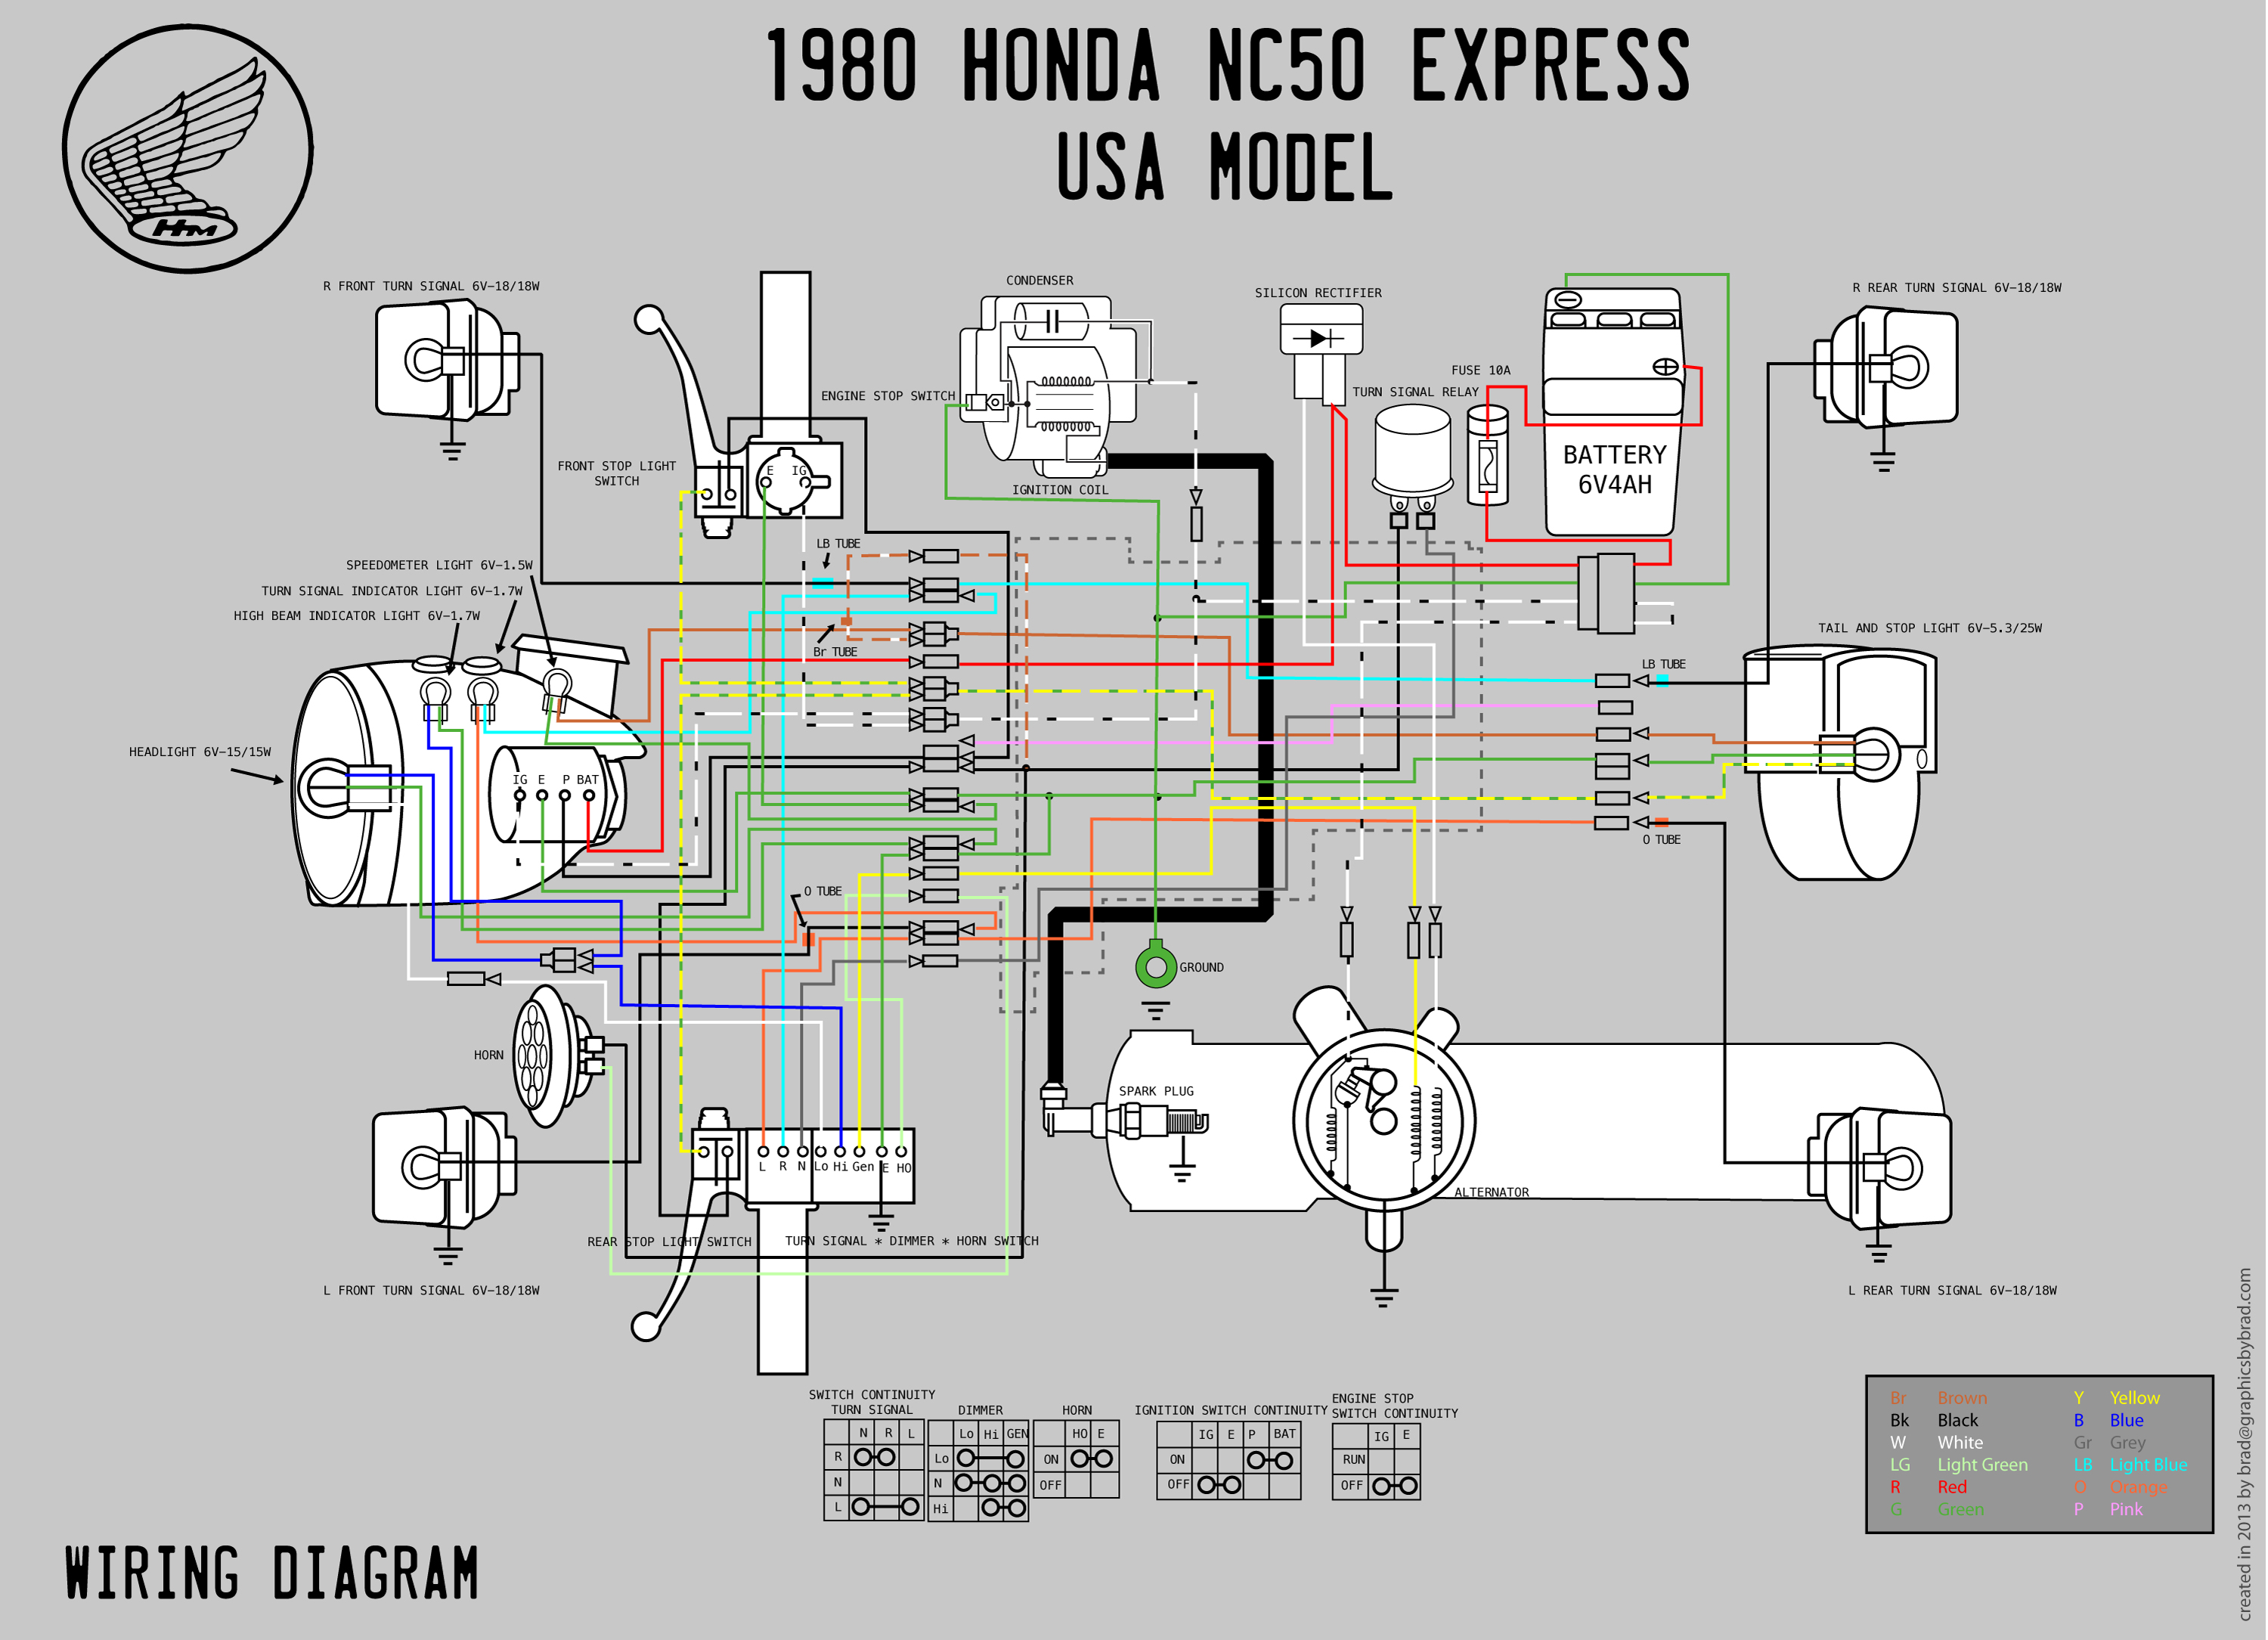 1980 Honda NC50 Wiring Diagram - Moped WikiMoped Army